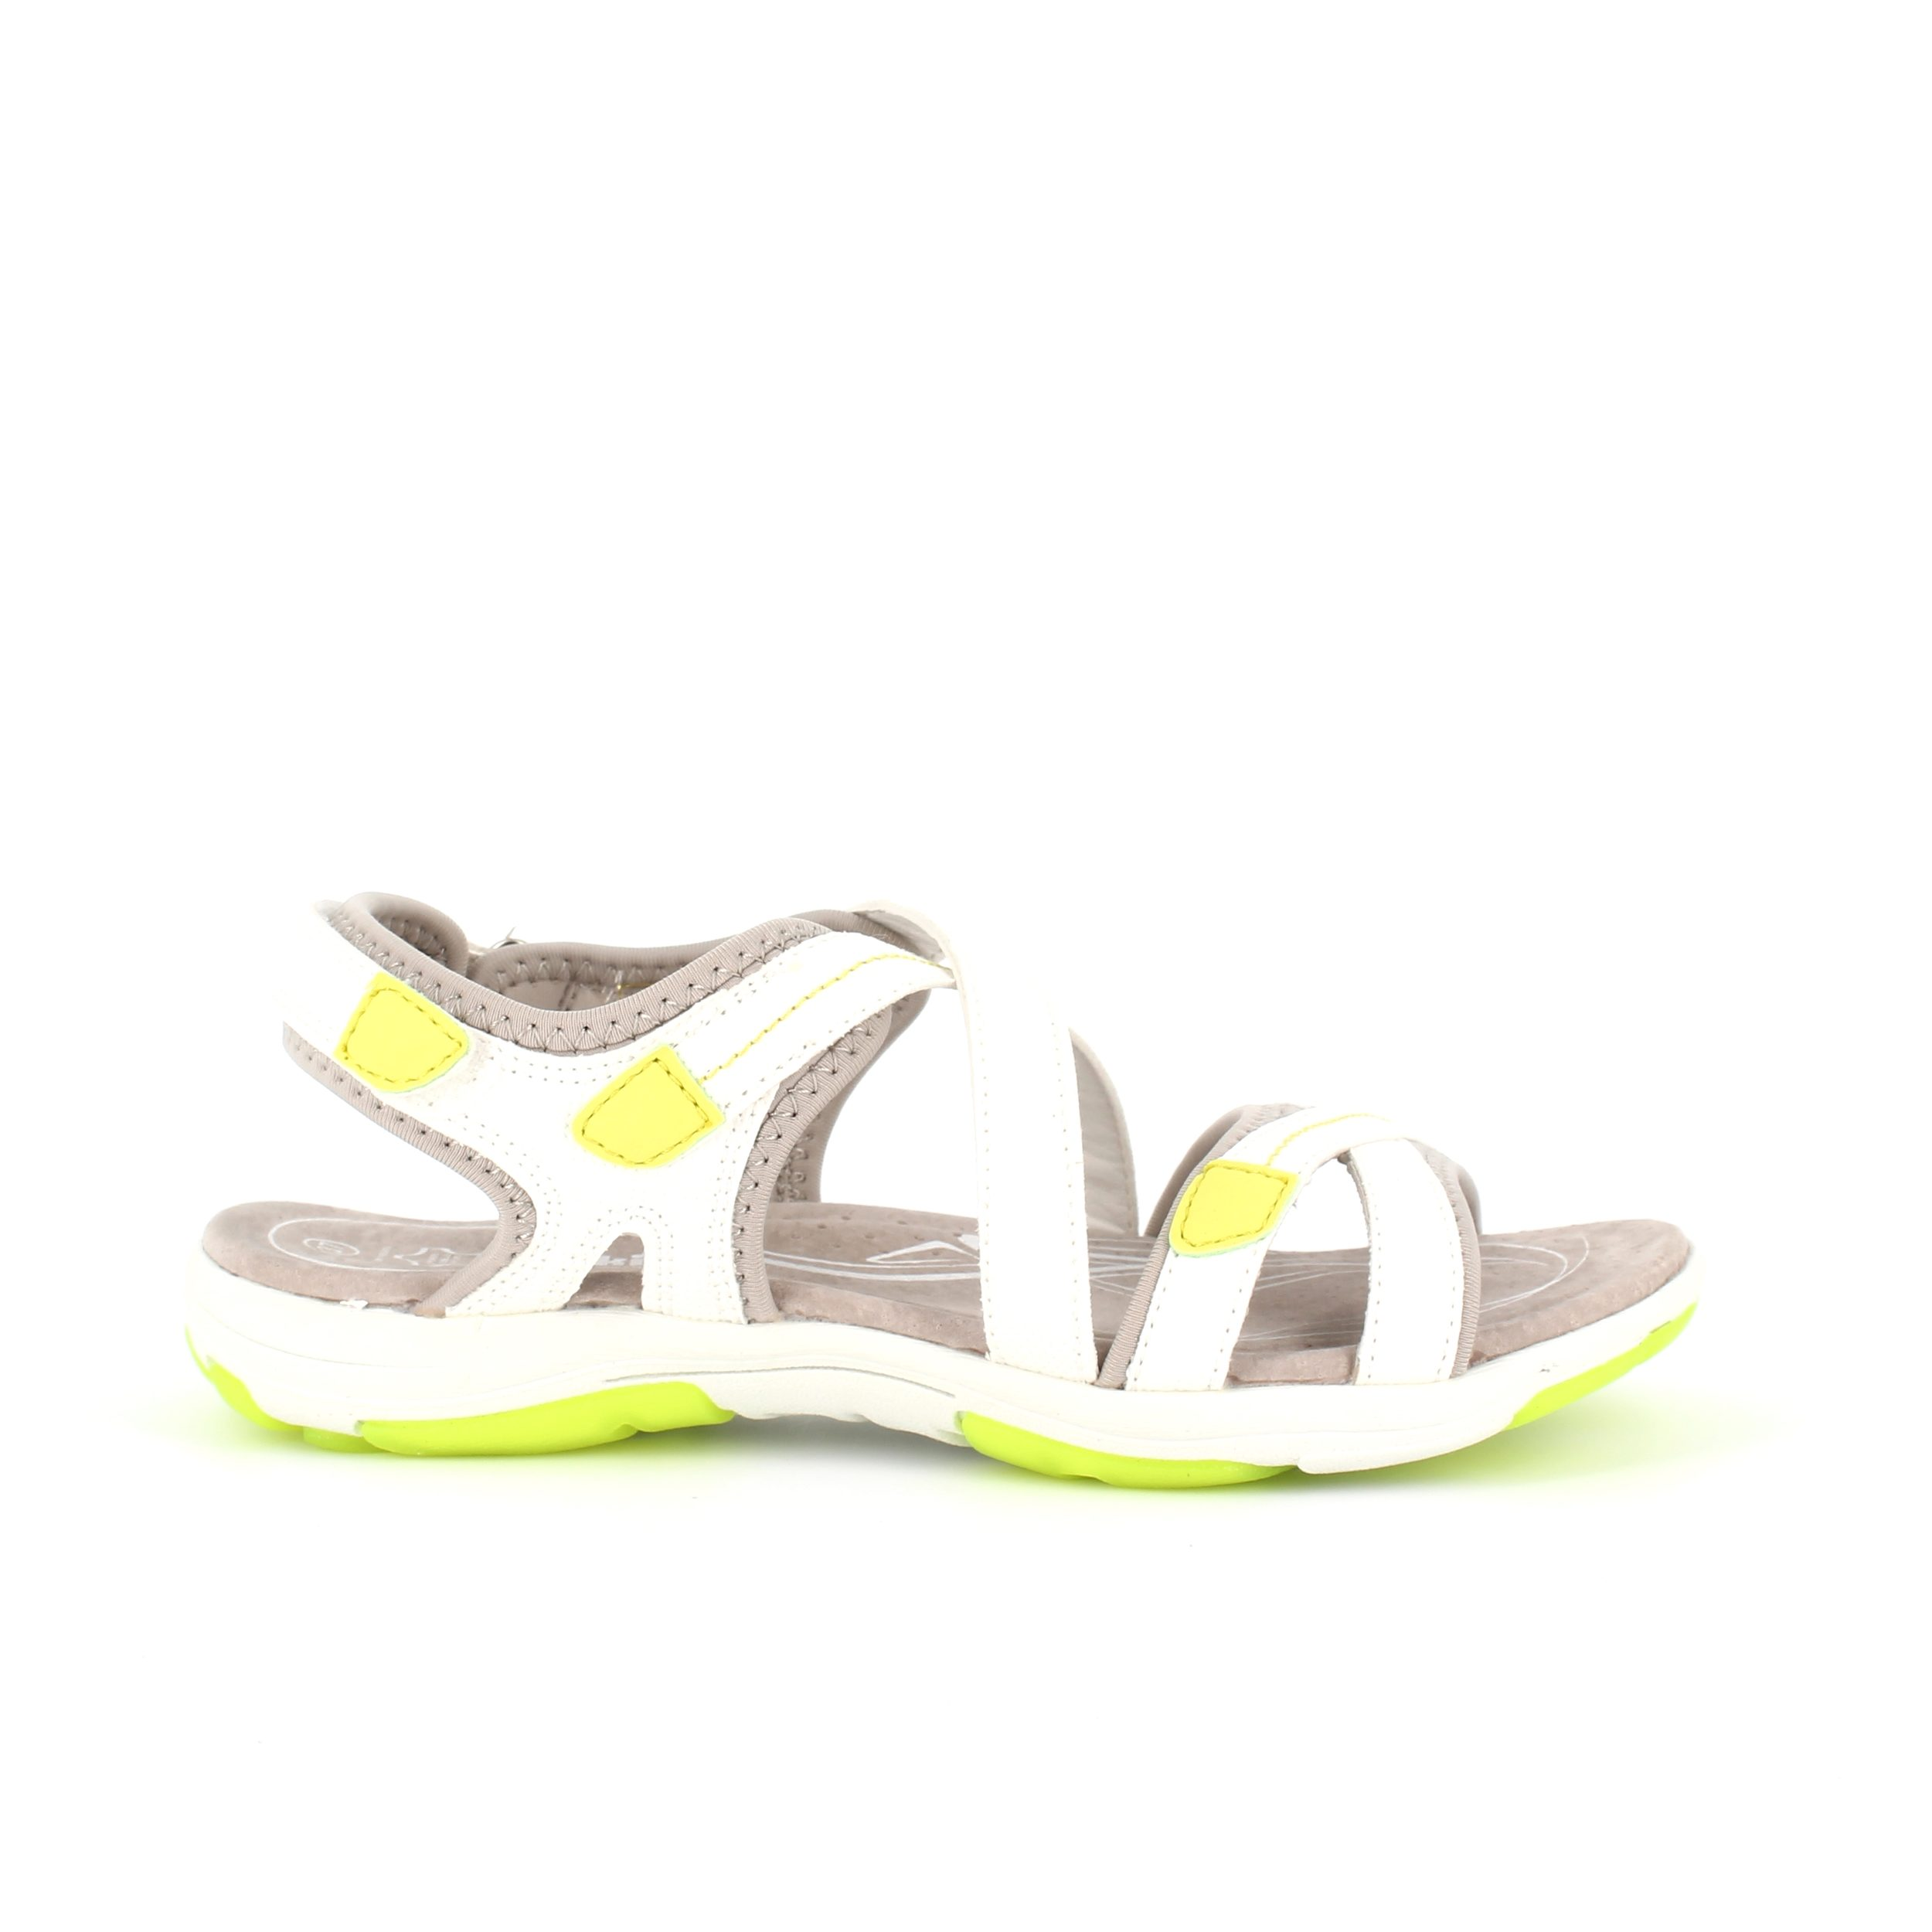 Image of   Smart sandal i frisk hvid og lime - 39